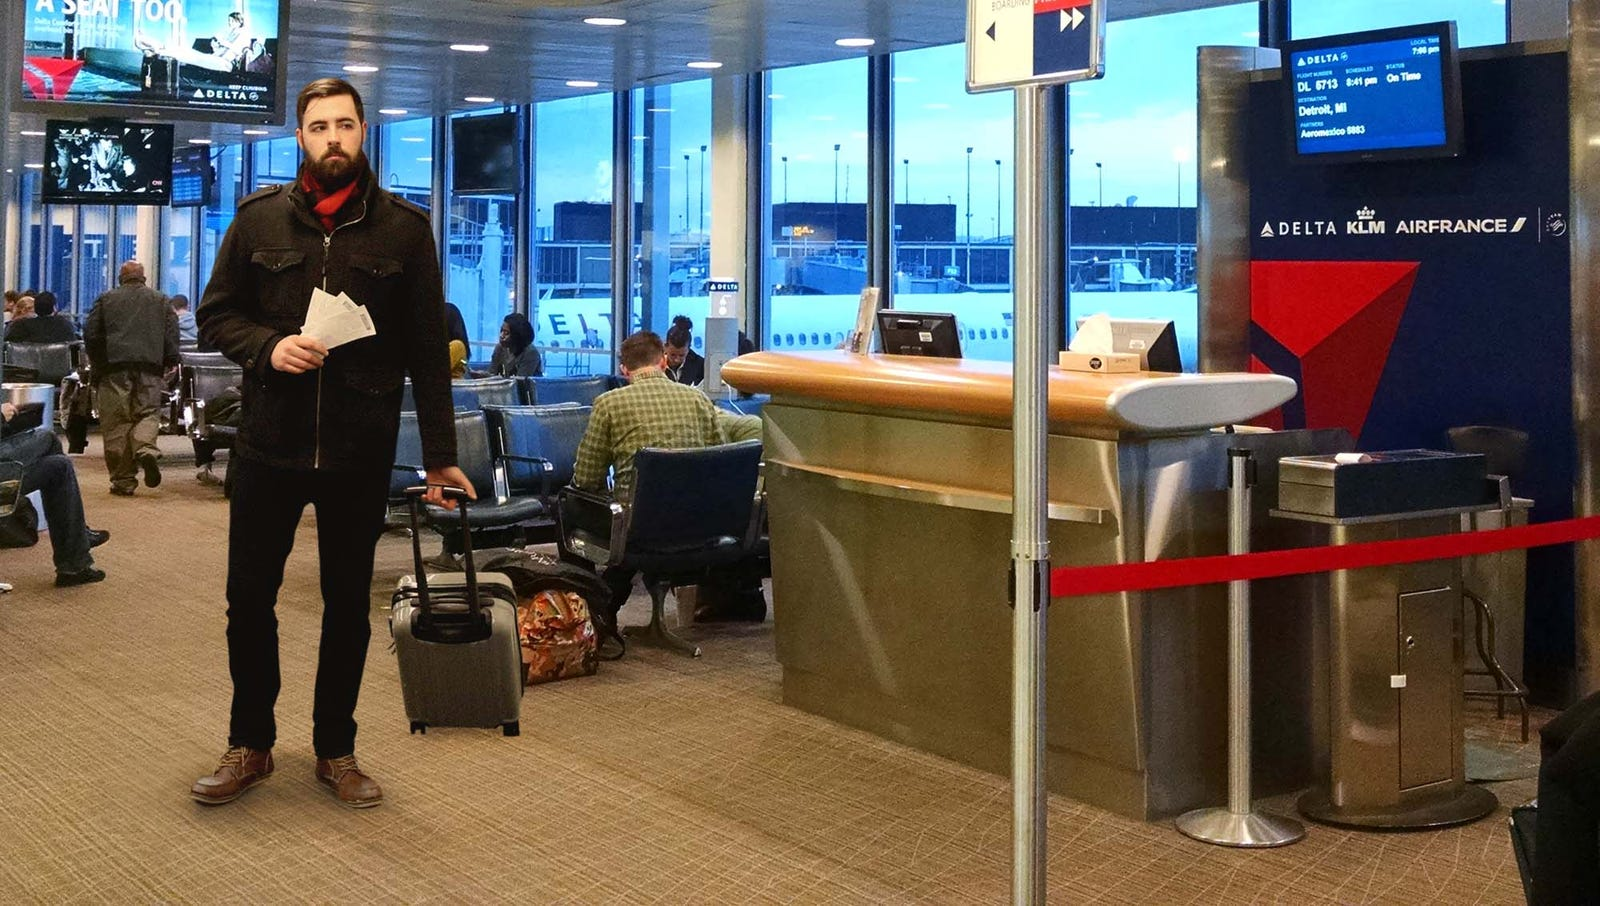 Man Prowling At Airport Gate Ready To Pounce Like Jungle Cat At First Sign Of Boarding